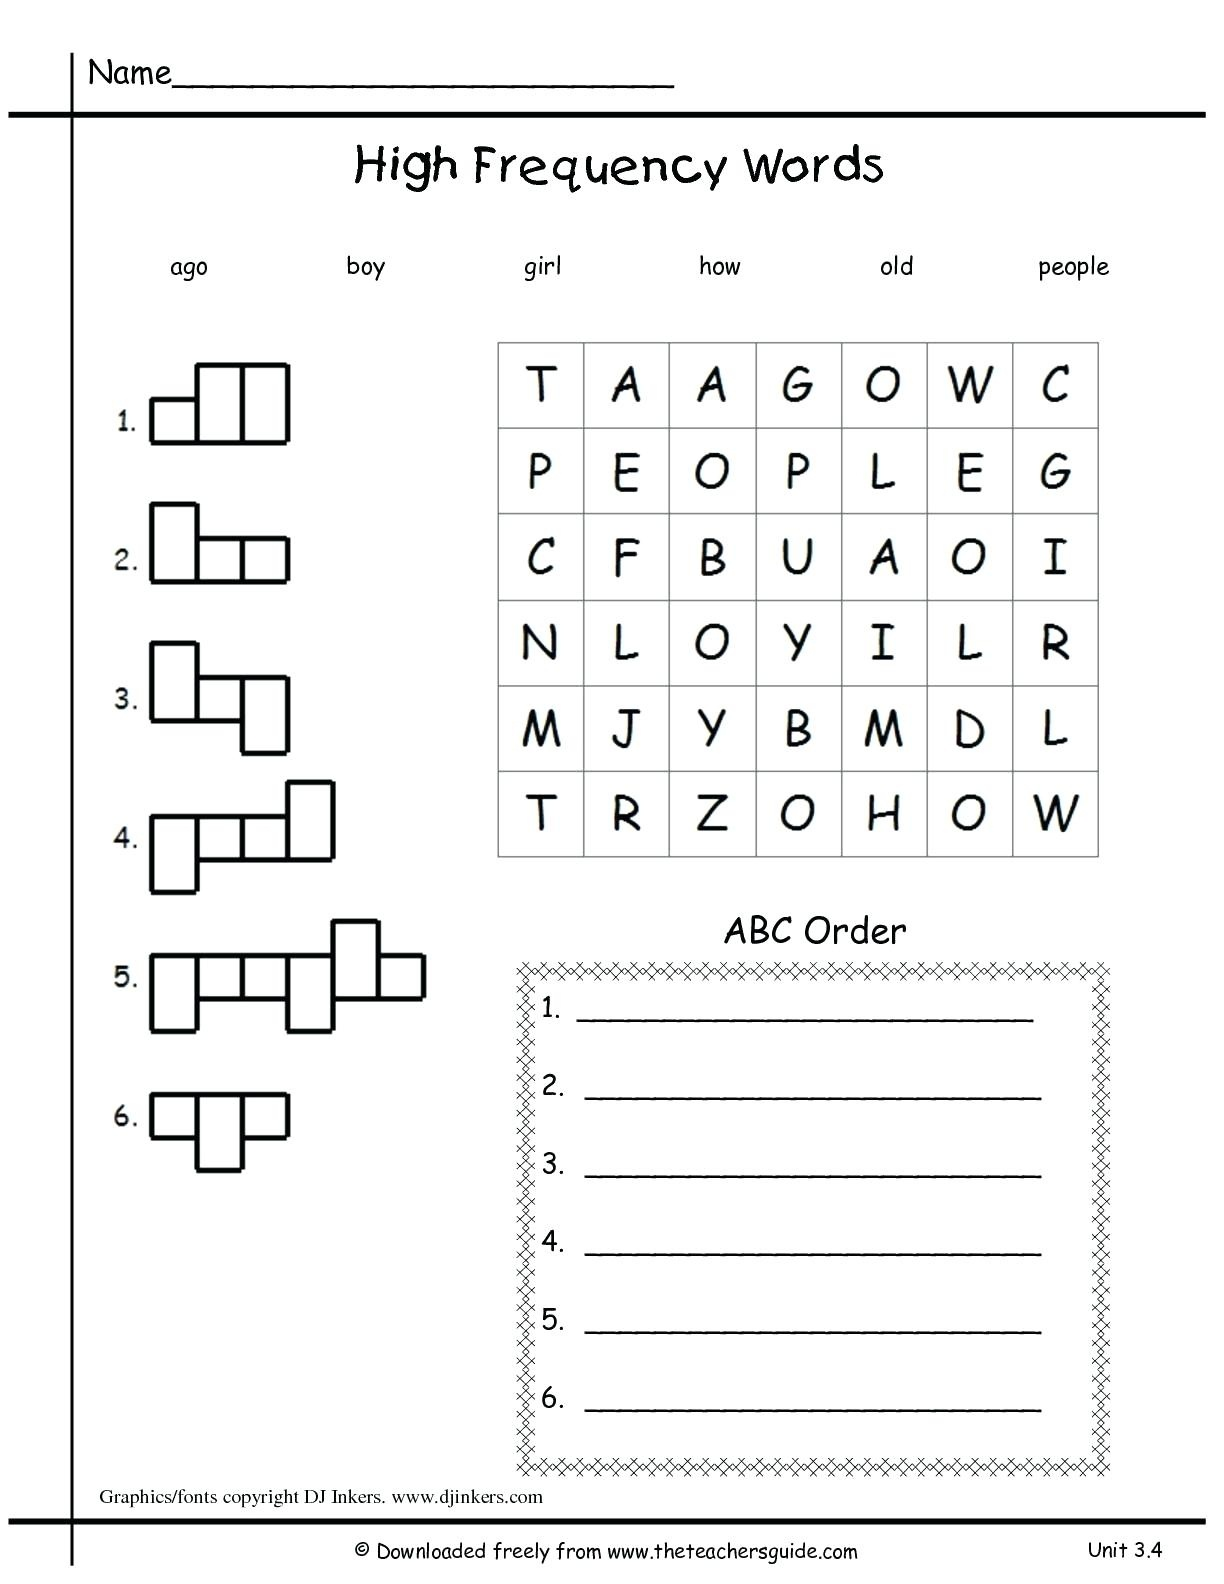 Free Printable Language Arts Worksheets For 1st Grade